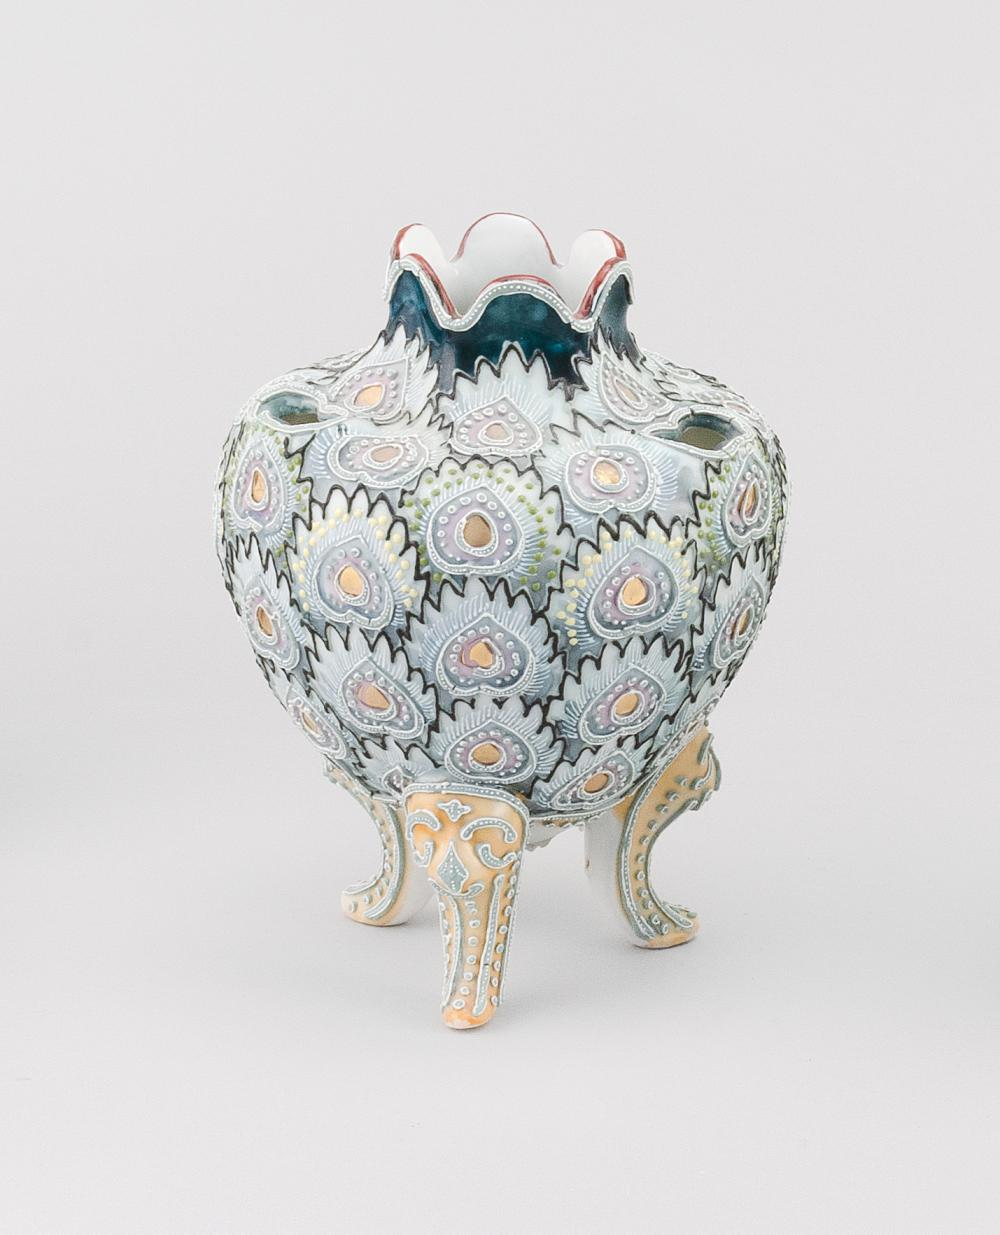 MORIAGE NIPPON PORCELAIN NARCISSUS VASE Ovoid, with peacock feather design. Van Patten #90 mark on base. Height 7